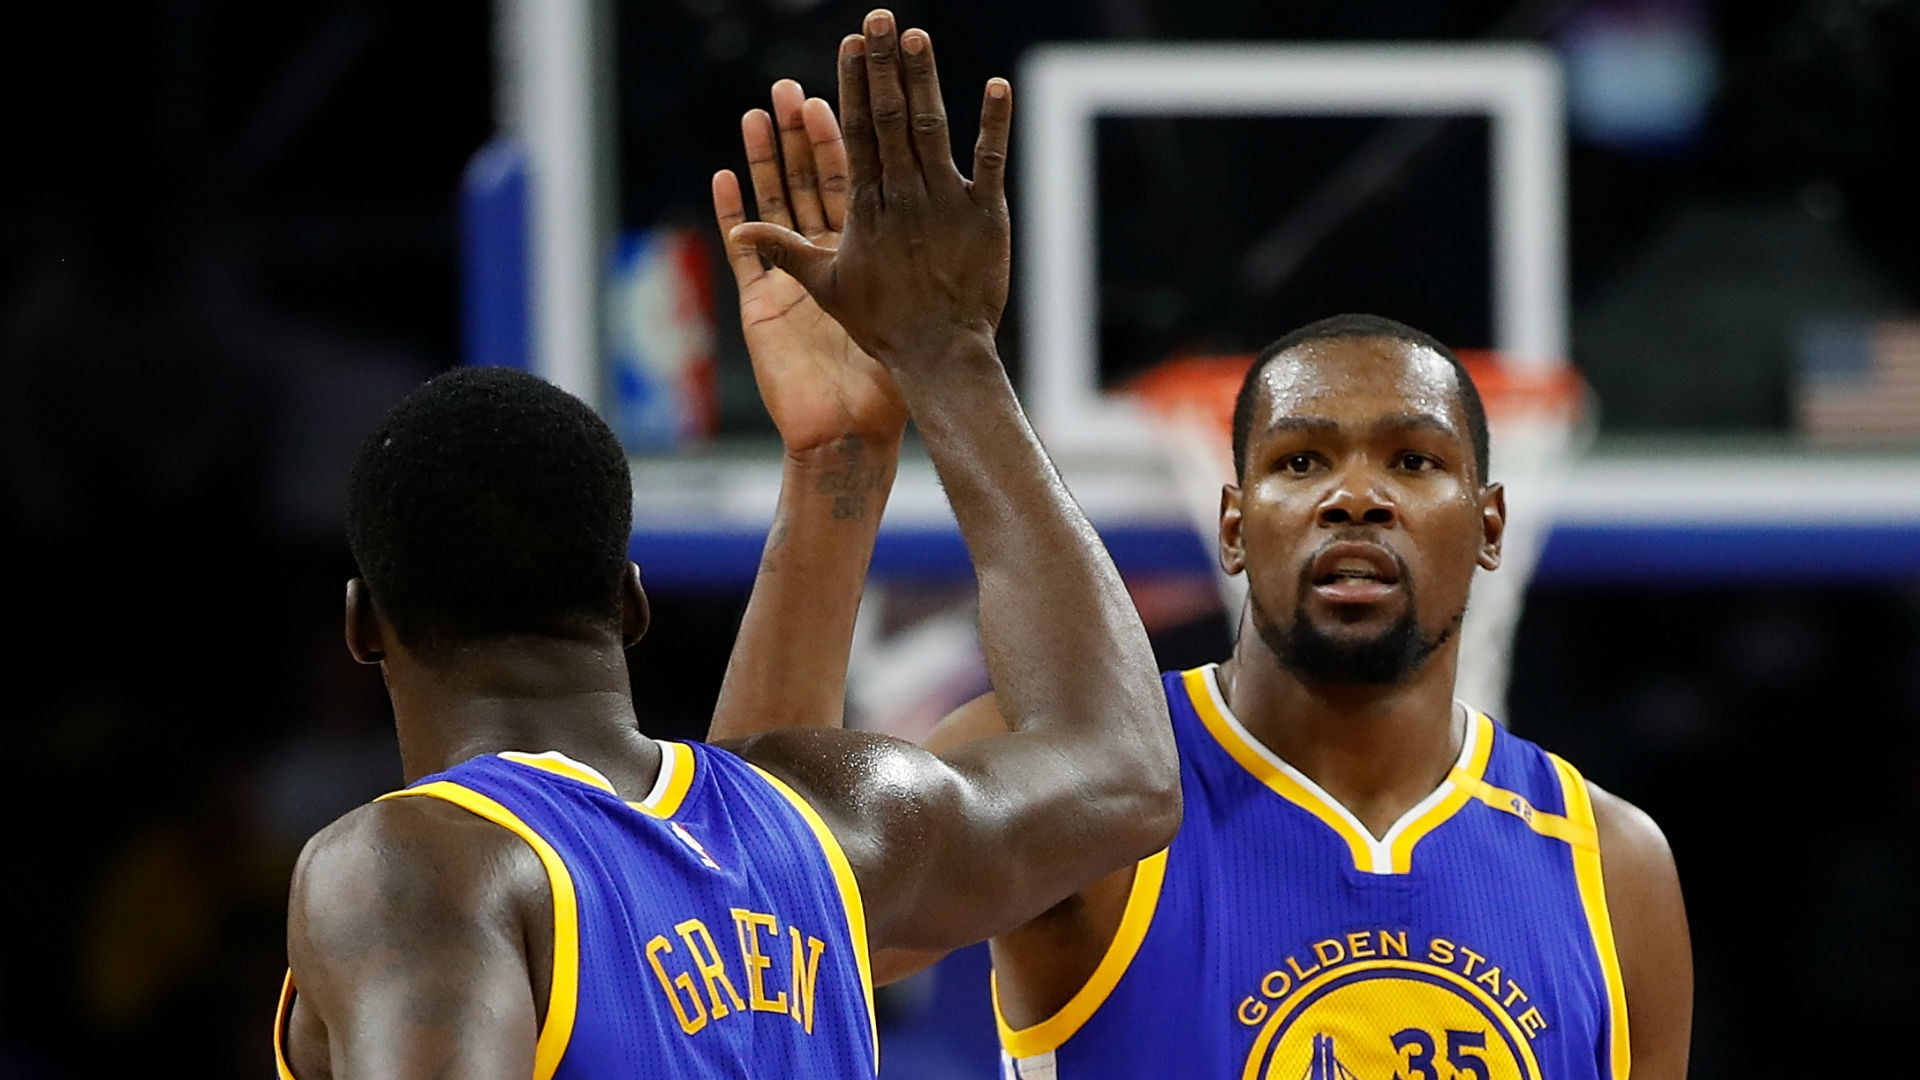 Kevin Durant and Draymond Green have moved on from their altercation, according to Warriors GM Bob Myers.